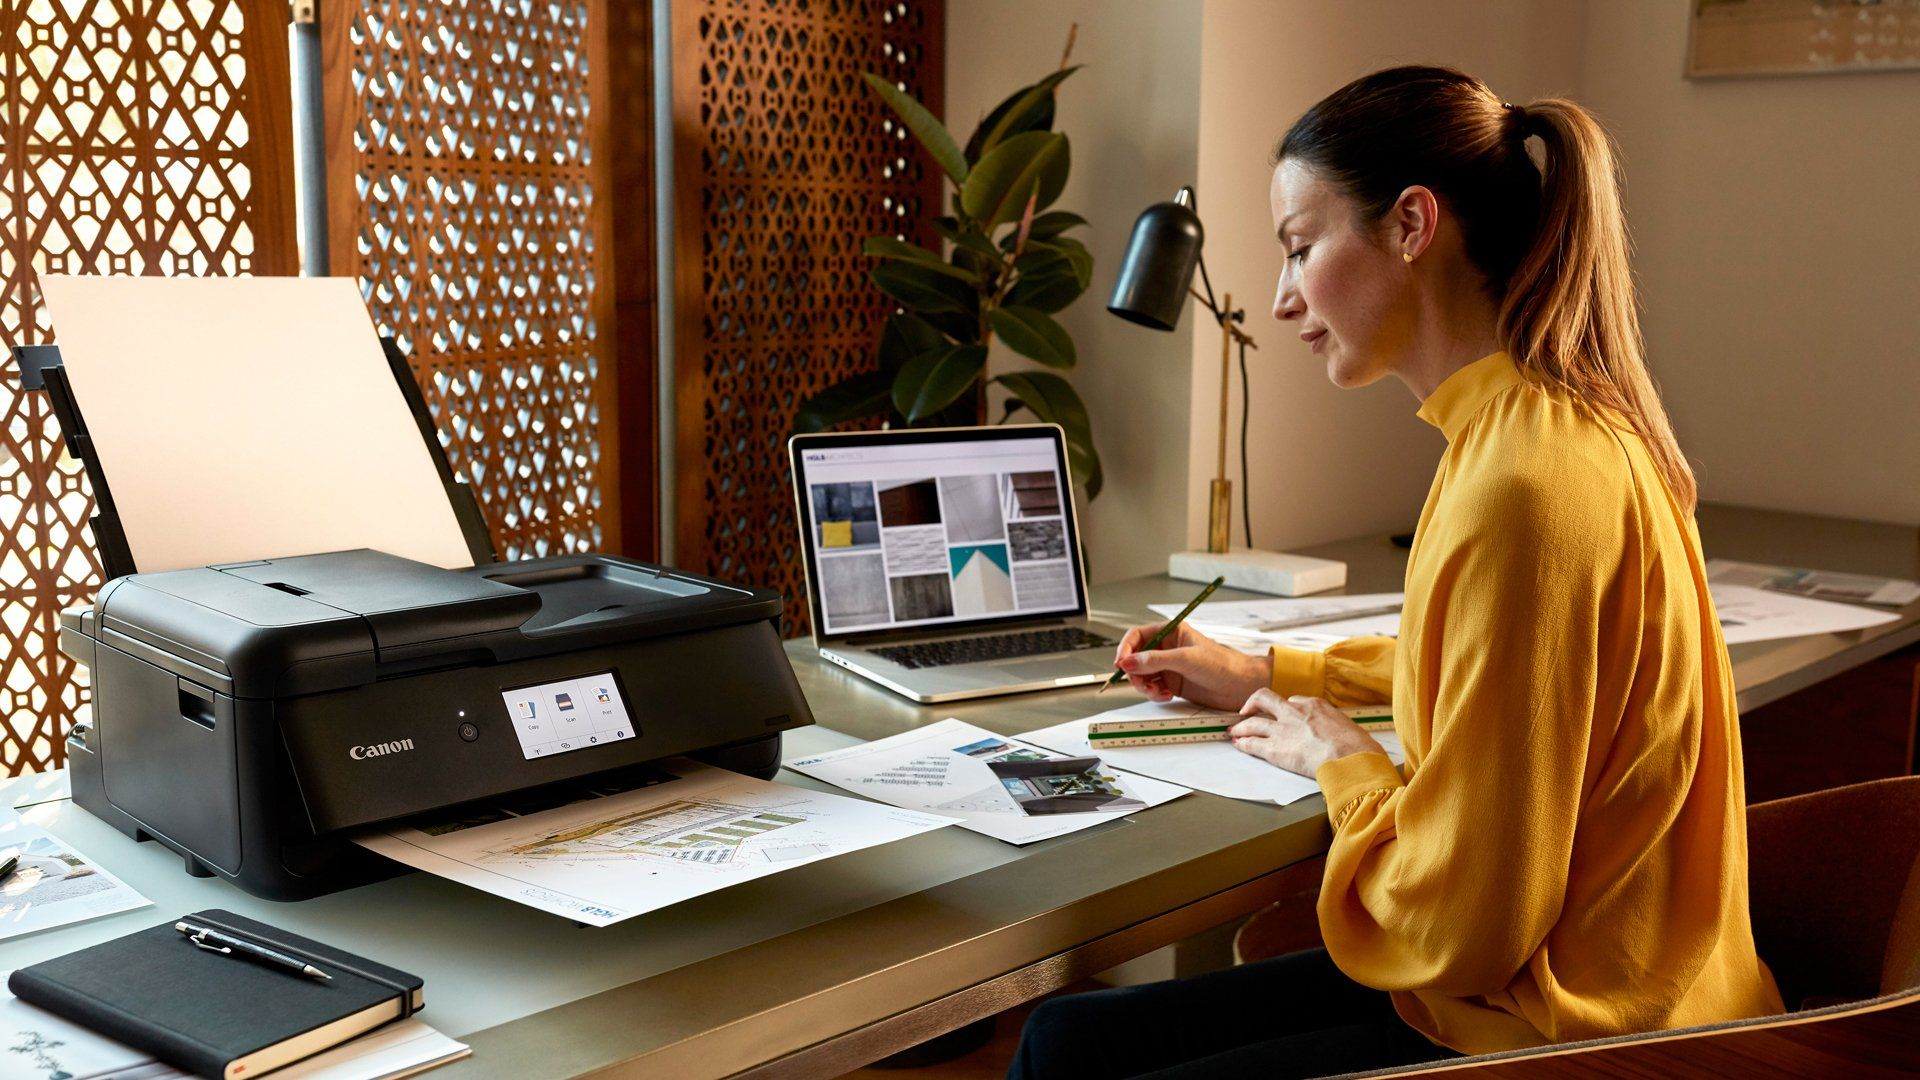 A female business owner prints with PIXMA TS9540 while drawing and using a ruler at her desk.